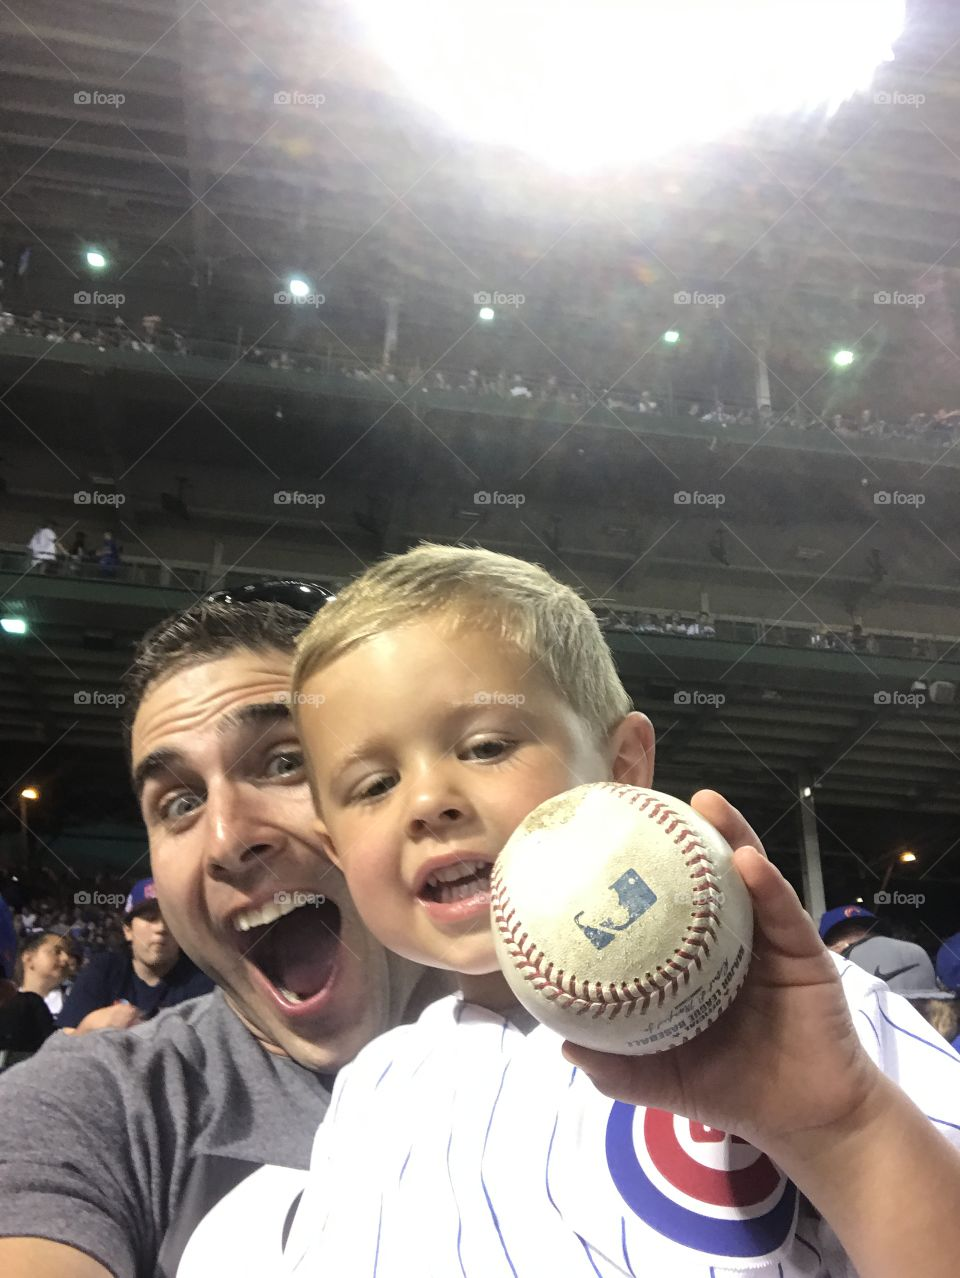 Caught a ball!!!